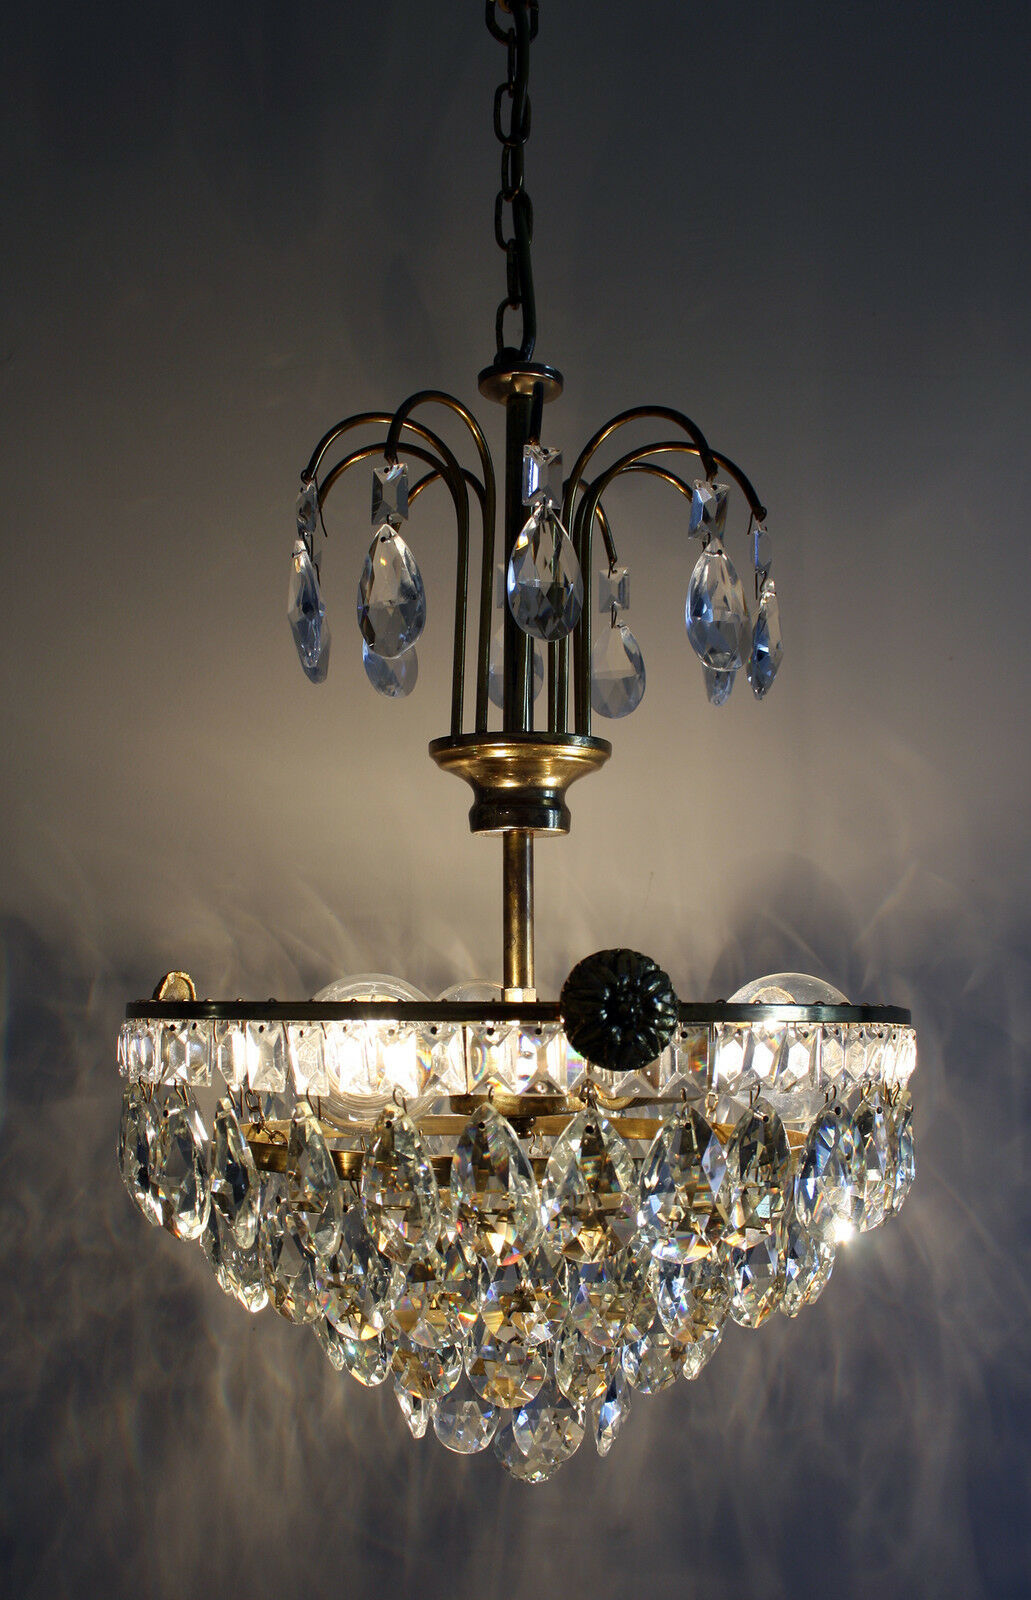 Antique Basket Style Brass & Crystals Chandelier from 1950's